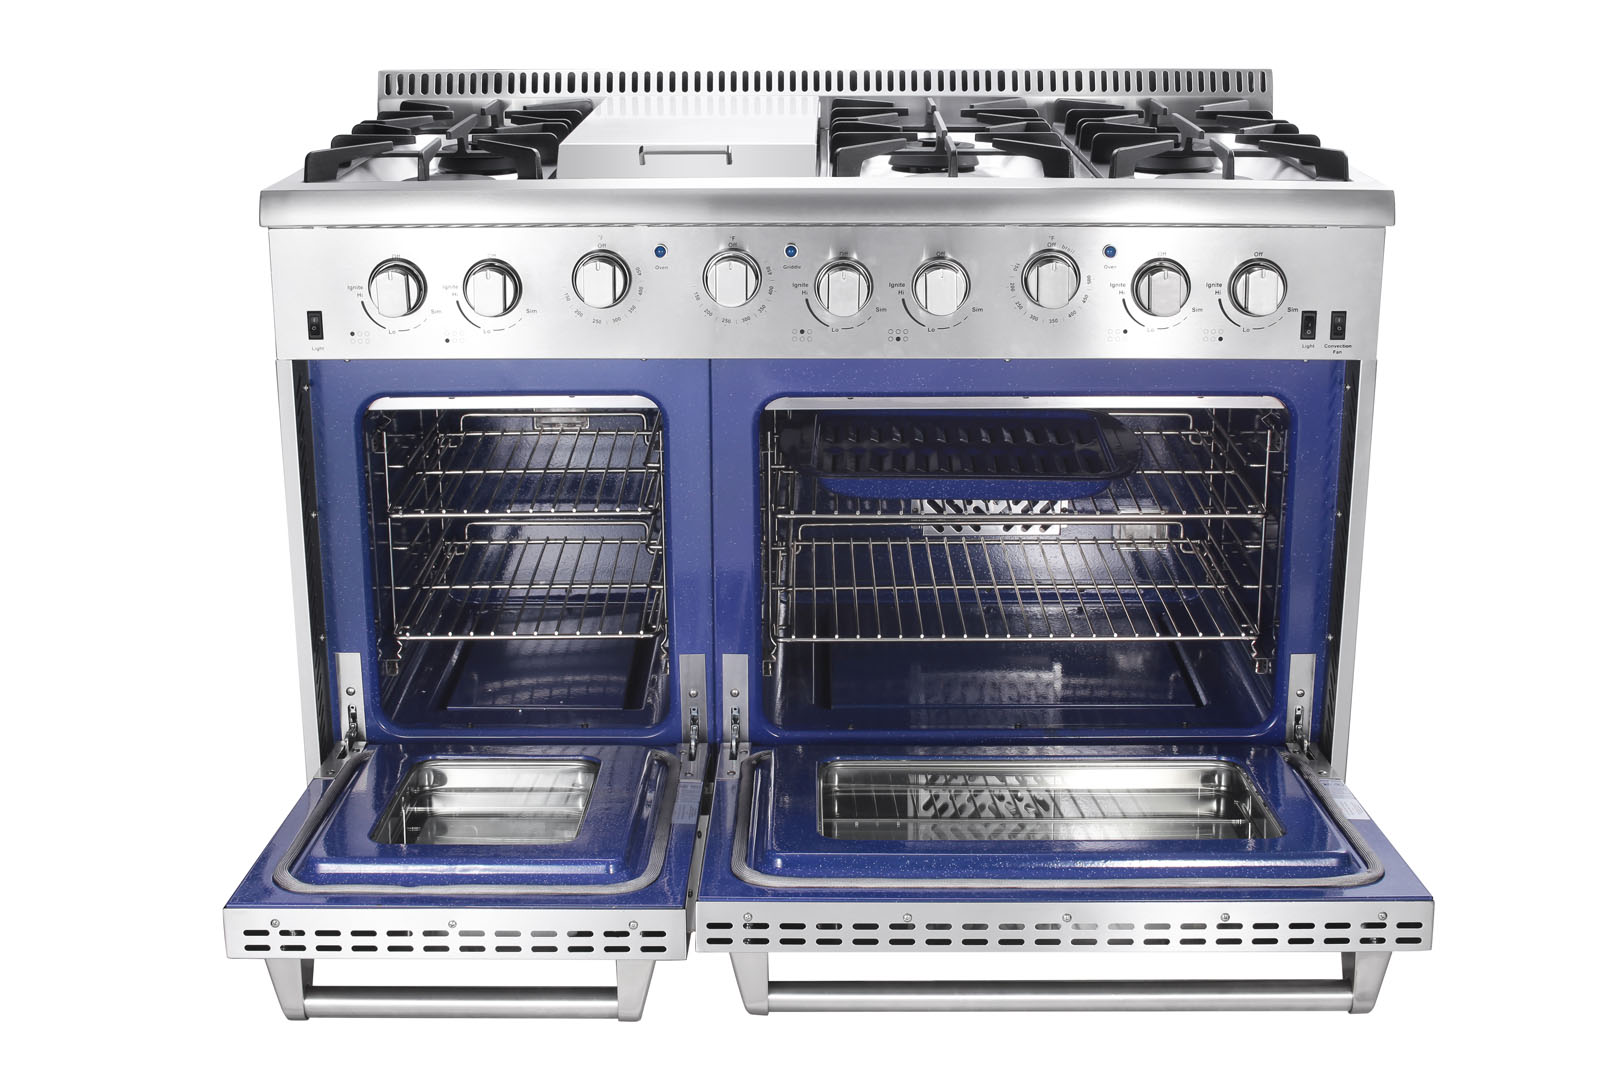 kitchen stove gas 48 in 6 7 cu ft oven gas range with convection 750